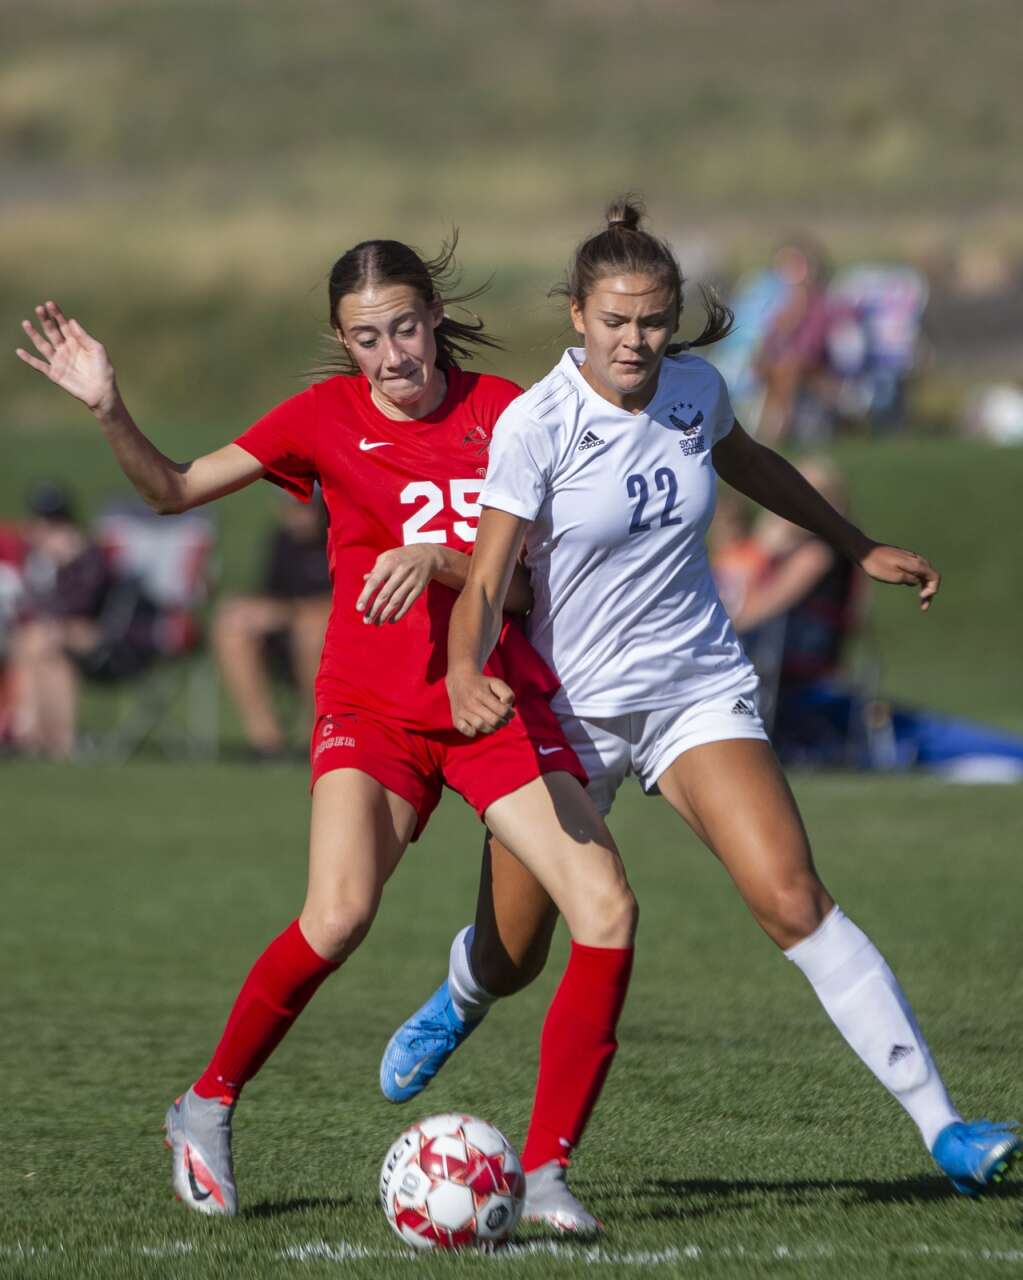 Park City High School's Kate Alderman (25) fights for possession against Skyline High School freshman Matea Liddiard (22) during their matchup at the North 40 playing fields Tuesday afternoon, Sept. 14, 2021. The Miners fell to the Eagles 7-0. (Tanzi Propst/Park Record)